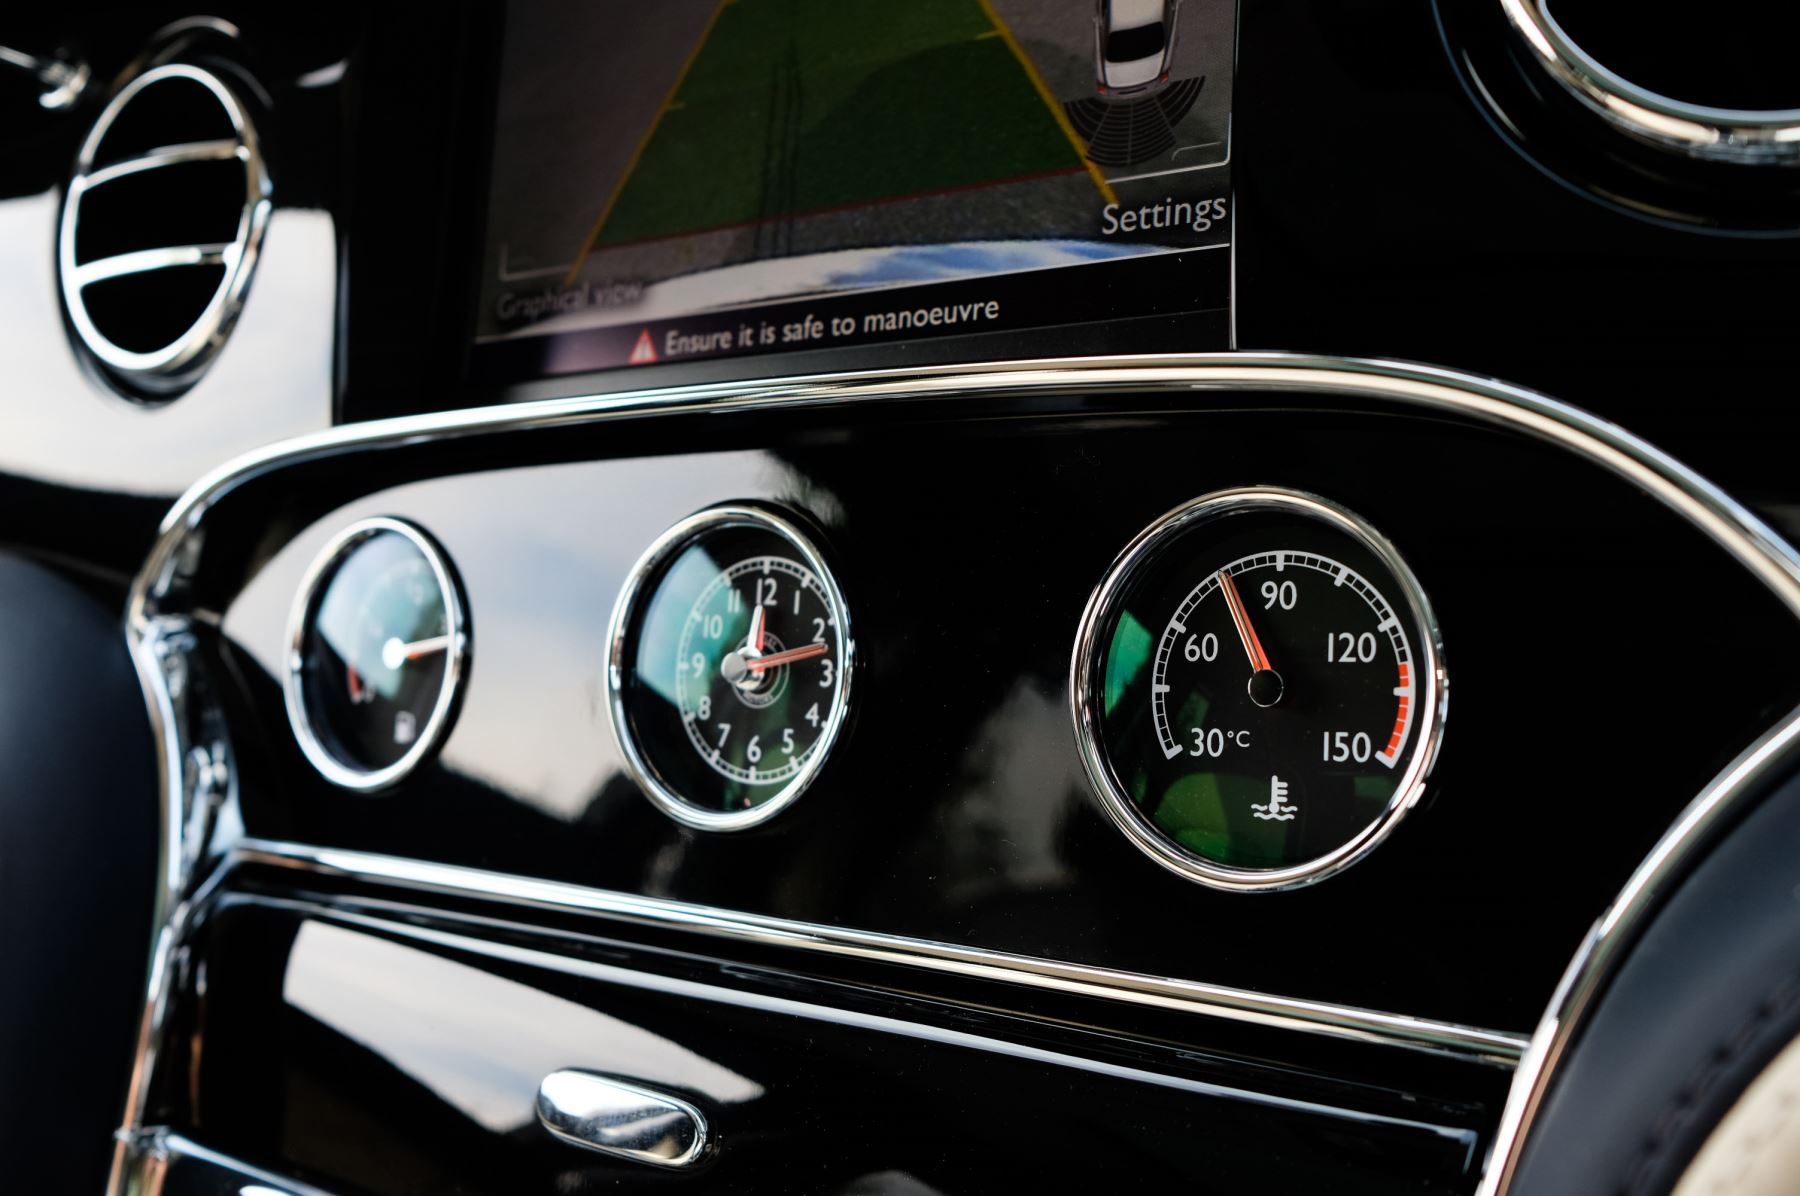 Bentley Mulsanne Speed 6.8 V8 Speed - Speed Premier and Entertainment Specification image 29